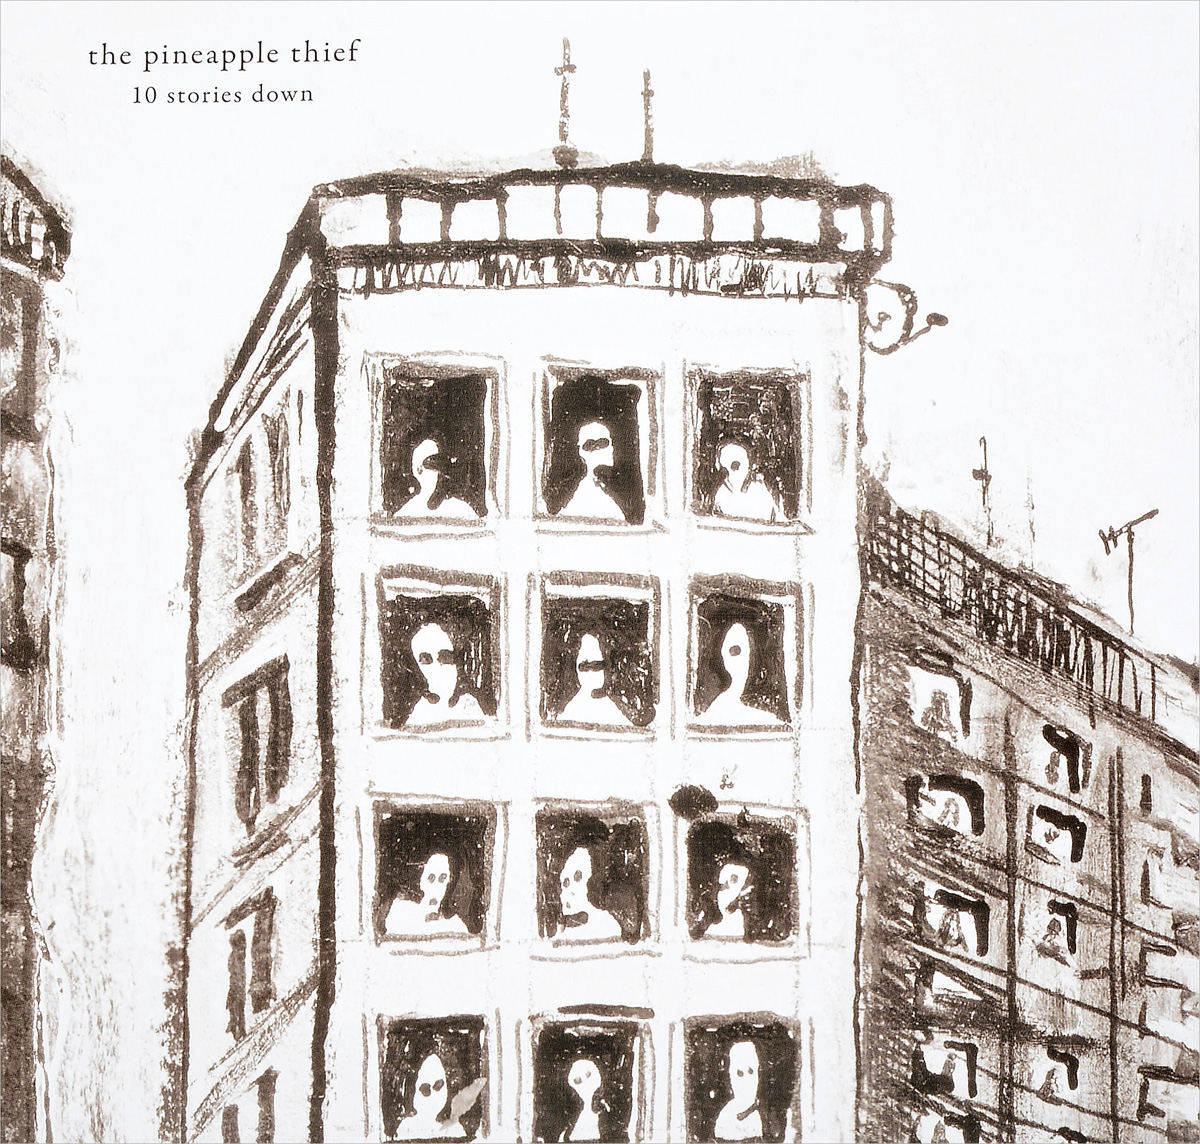 The Pineapple Thief The Pineapple Thief. 10 Stories Down (2 LP) pineapple print sheet set